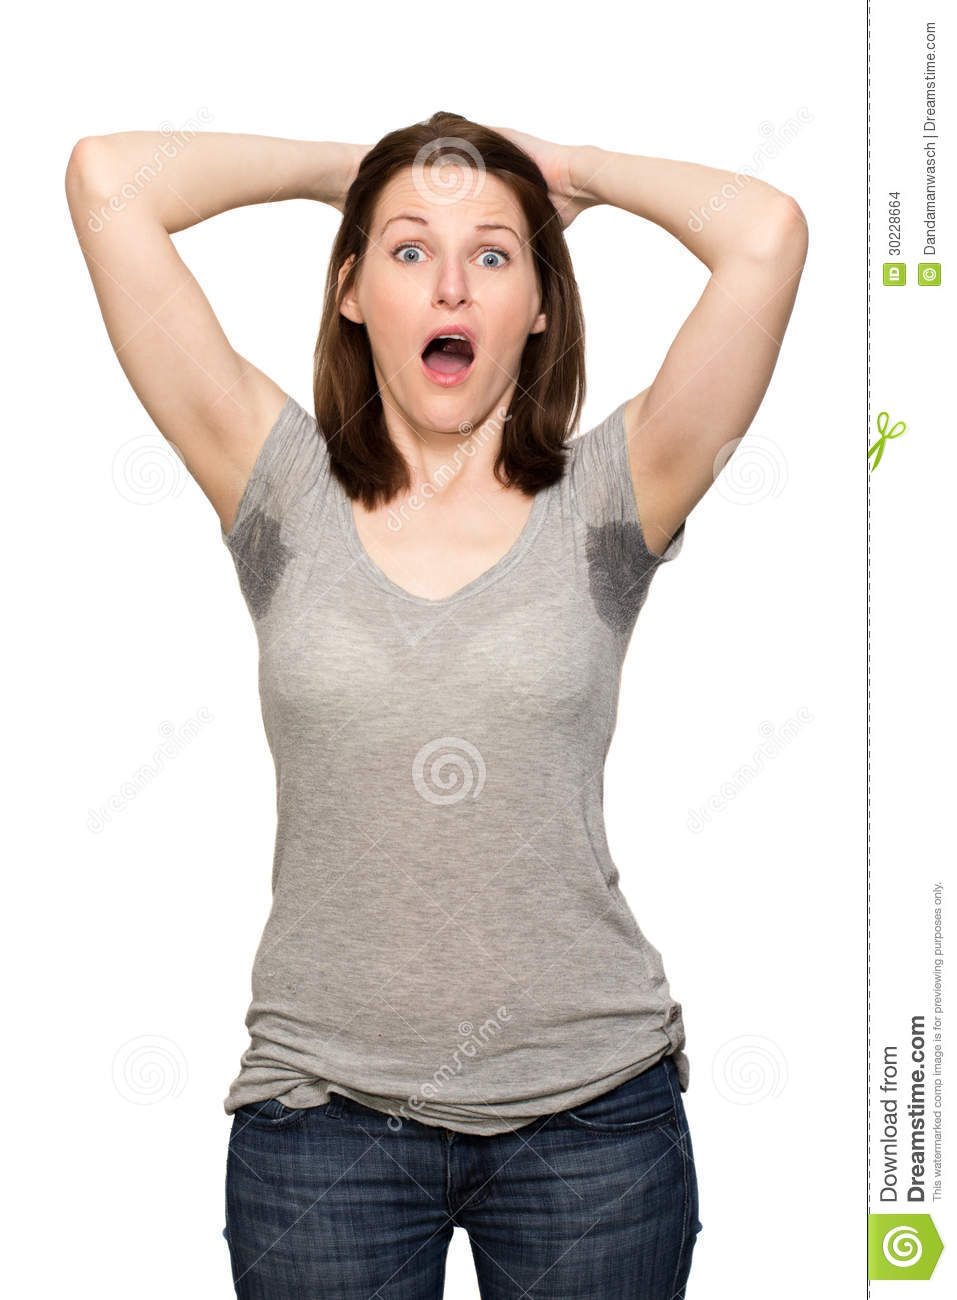 Woman Sweating Very Badly Under Armpit Stock Images - Image: 30228664